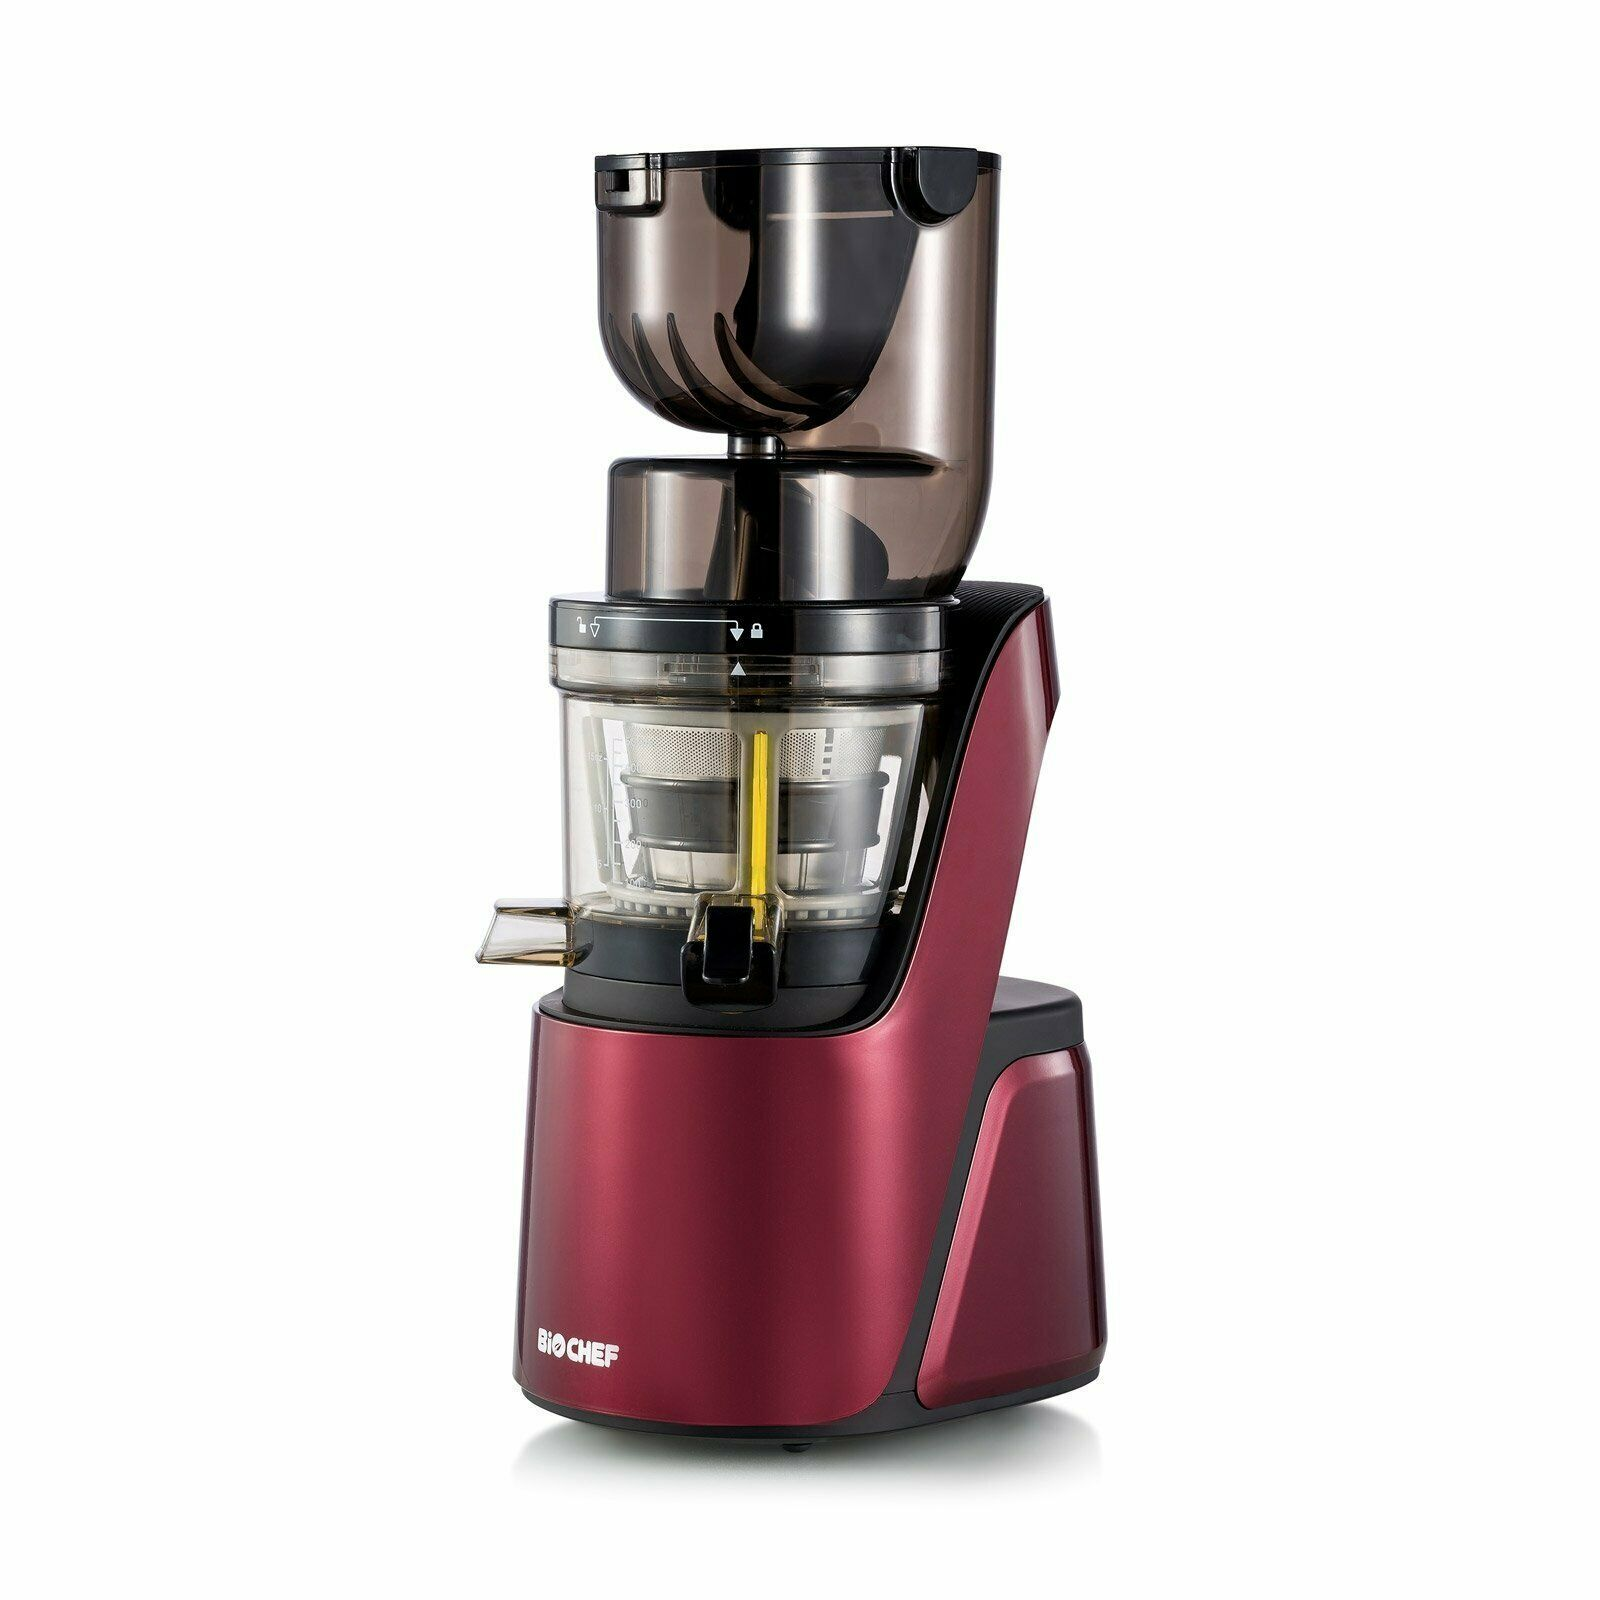 BioChef Quantum Whole SFaible Juicer - grand Mouth Masticating Juicer - Burgundy